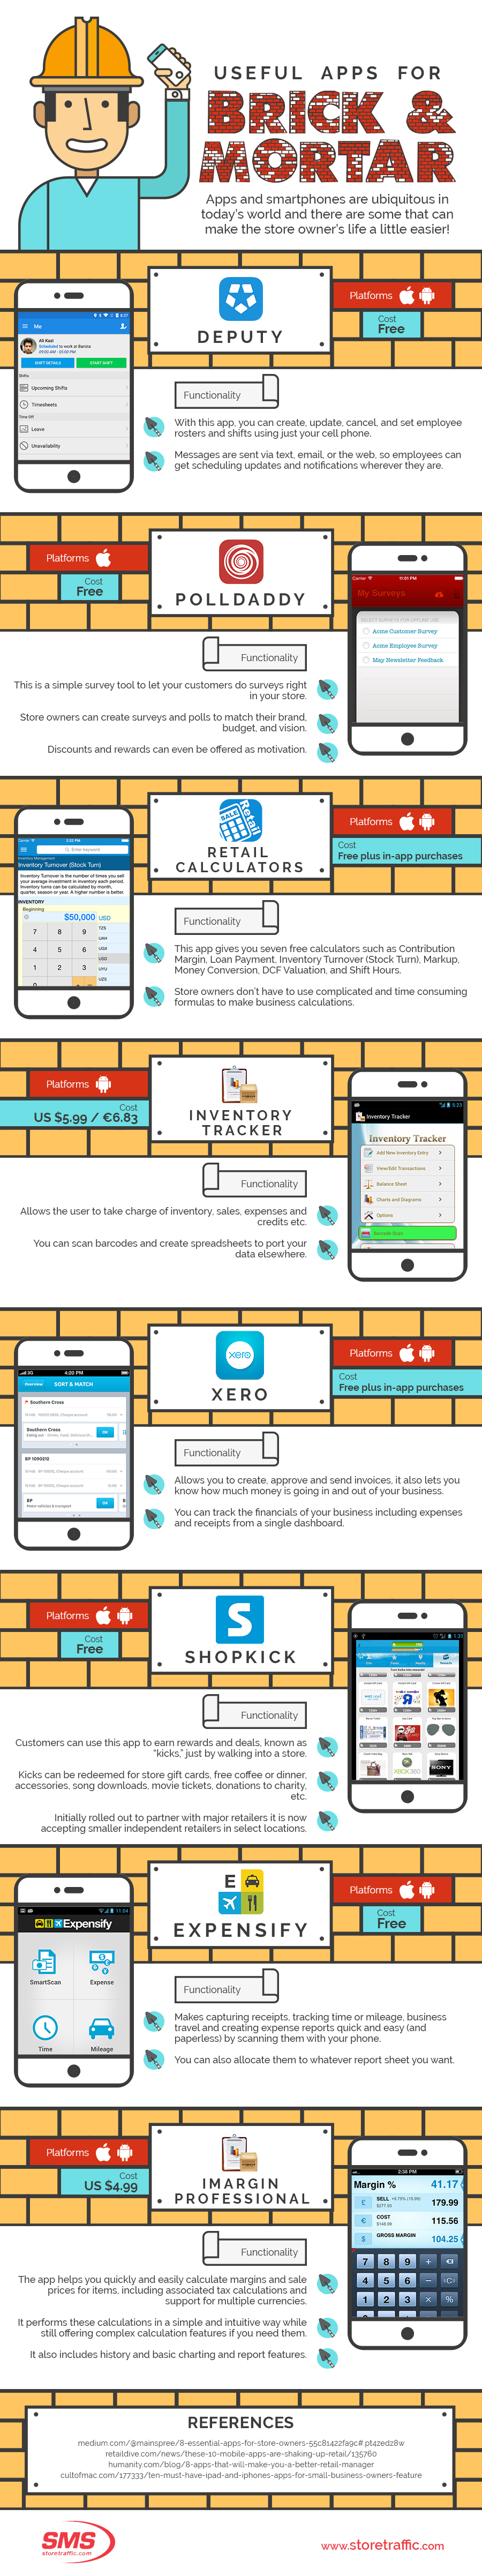 useful-apps-for-retailers